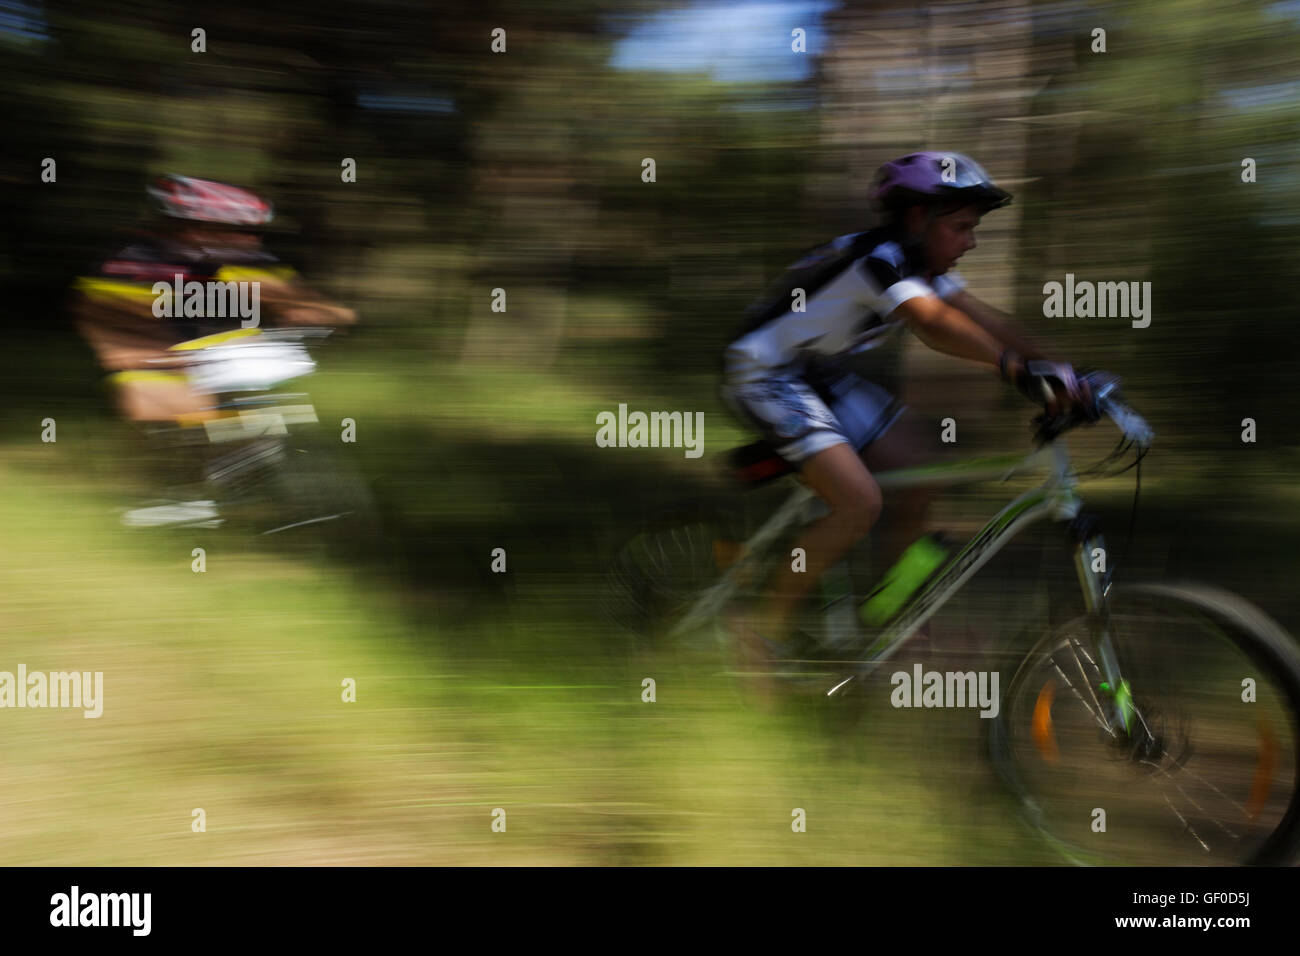 Young MTB cyclists with camera motion panning blurry background light streaks. Seih sou forest, Bike and fun 2016, - Stock Image